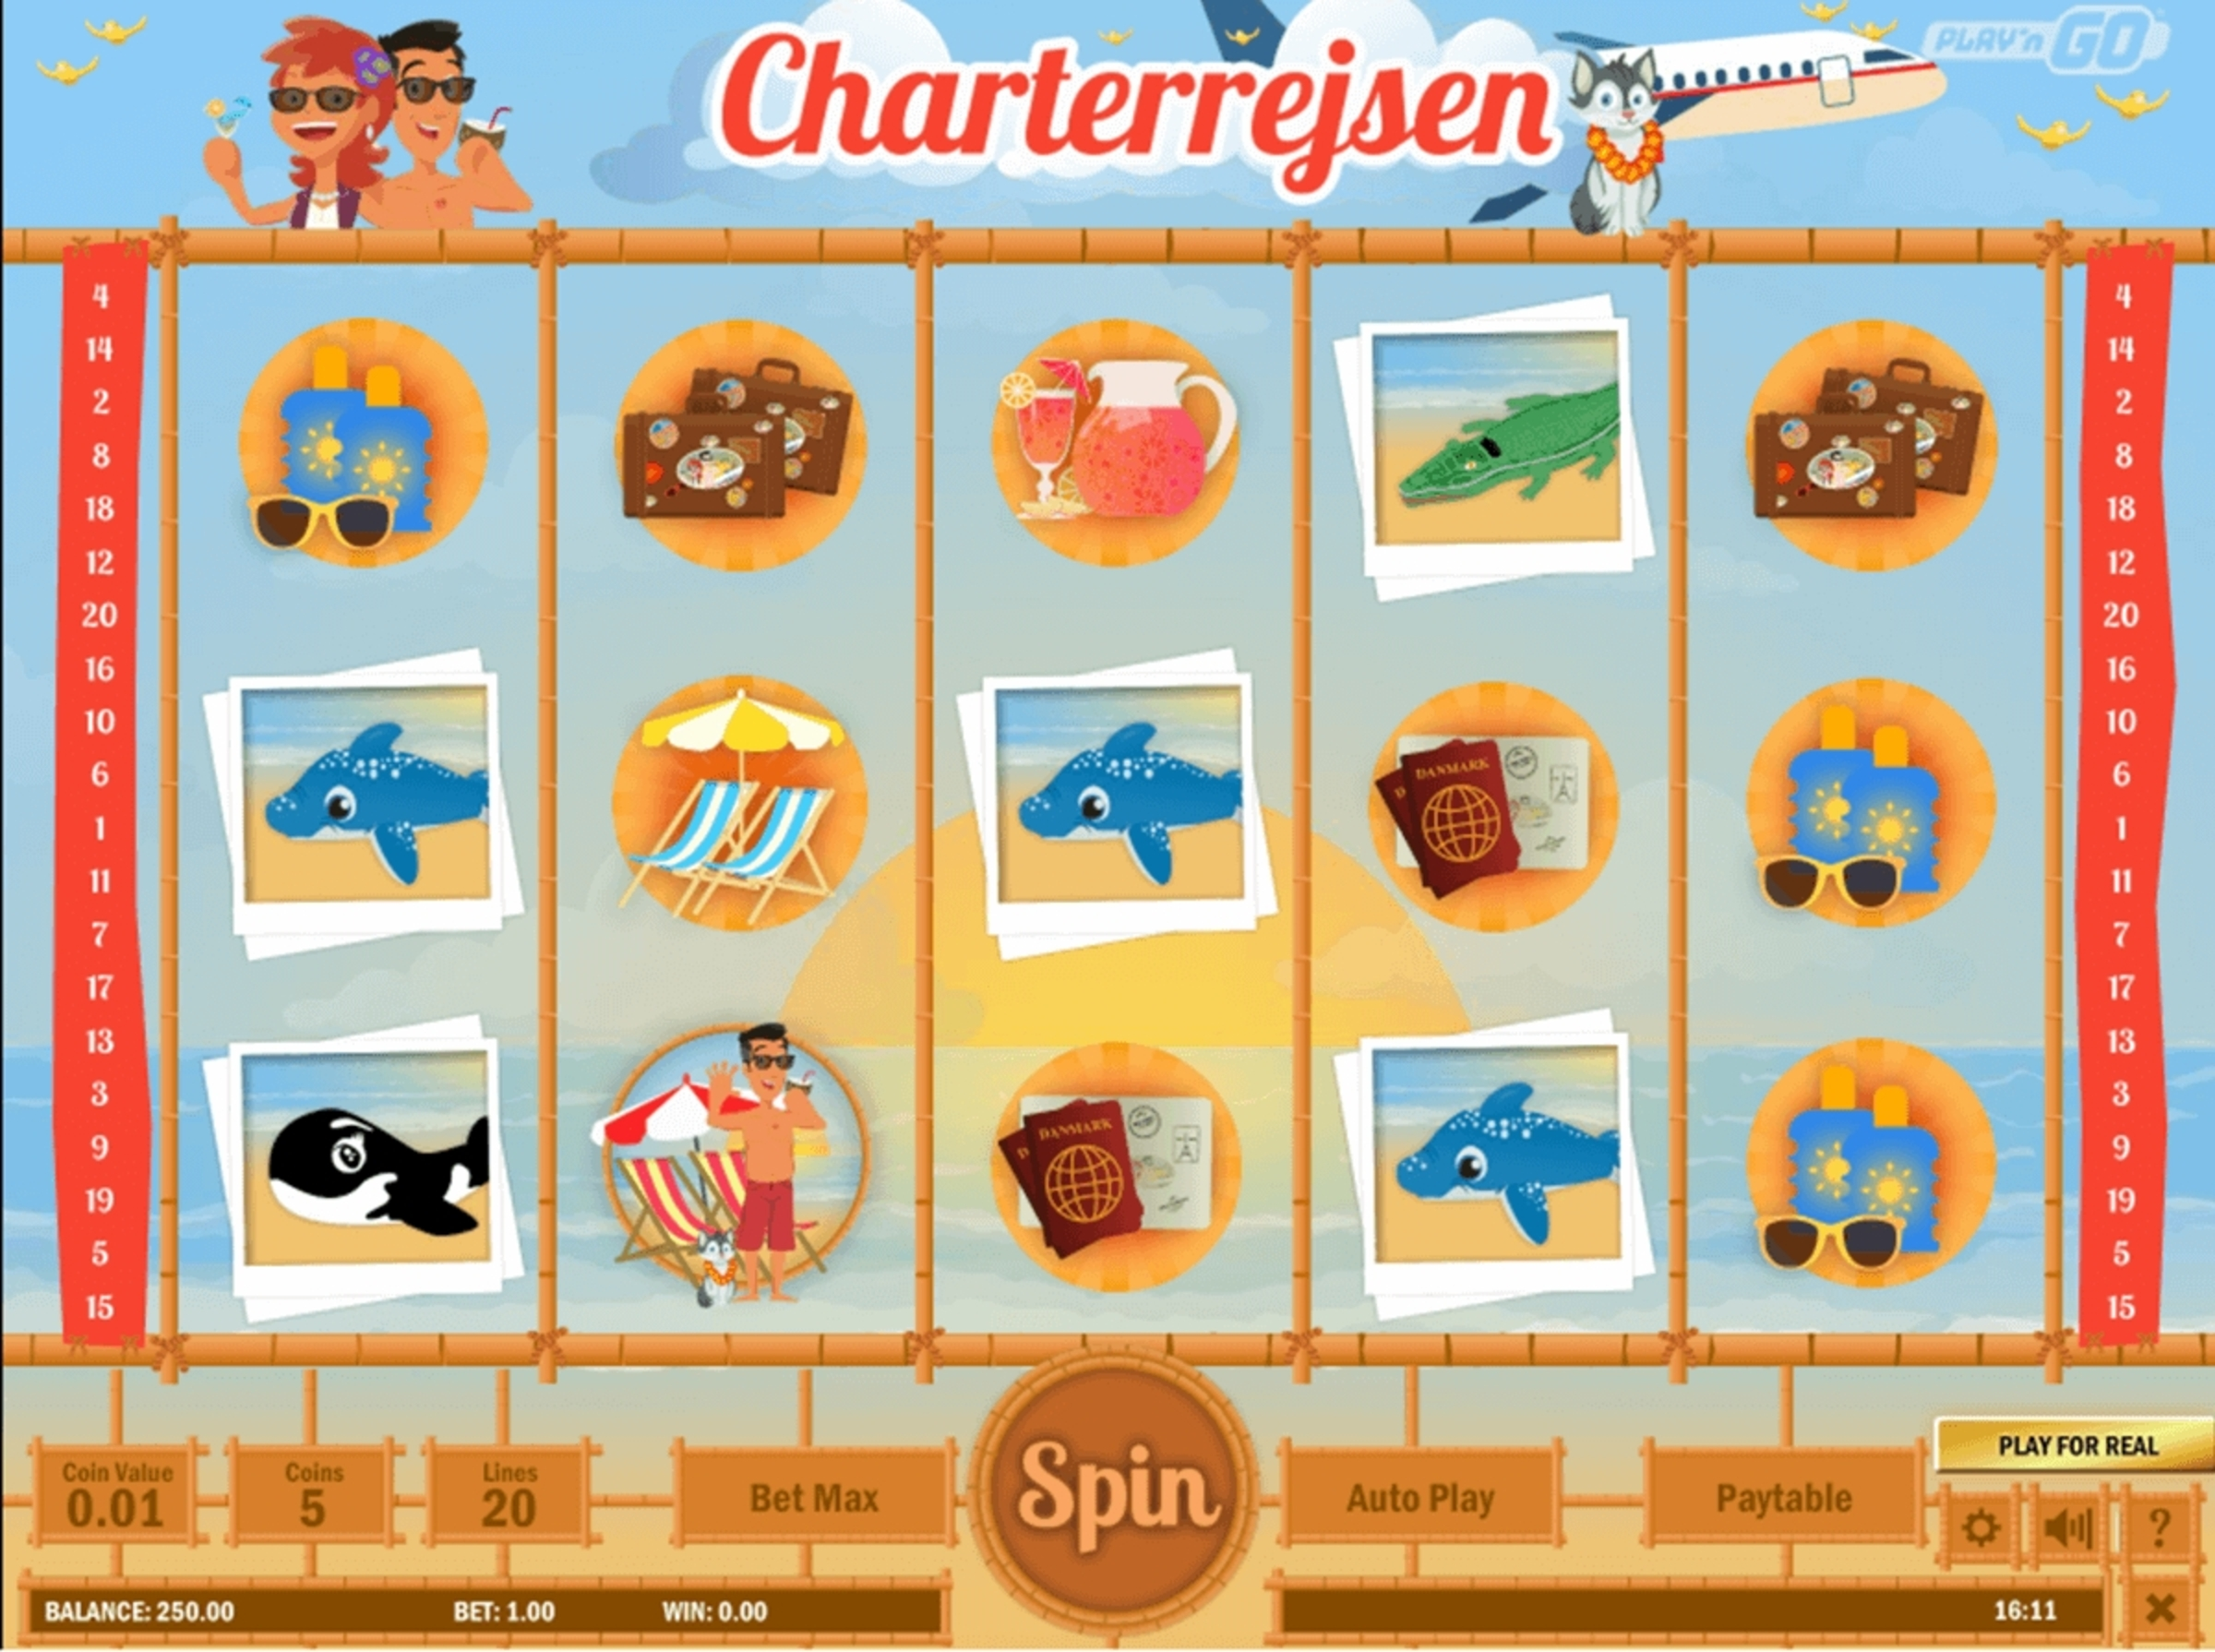 The Charterrejsen Online Slot Demo Game by Playn GO